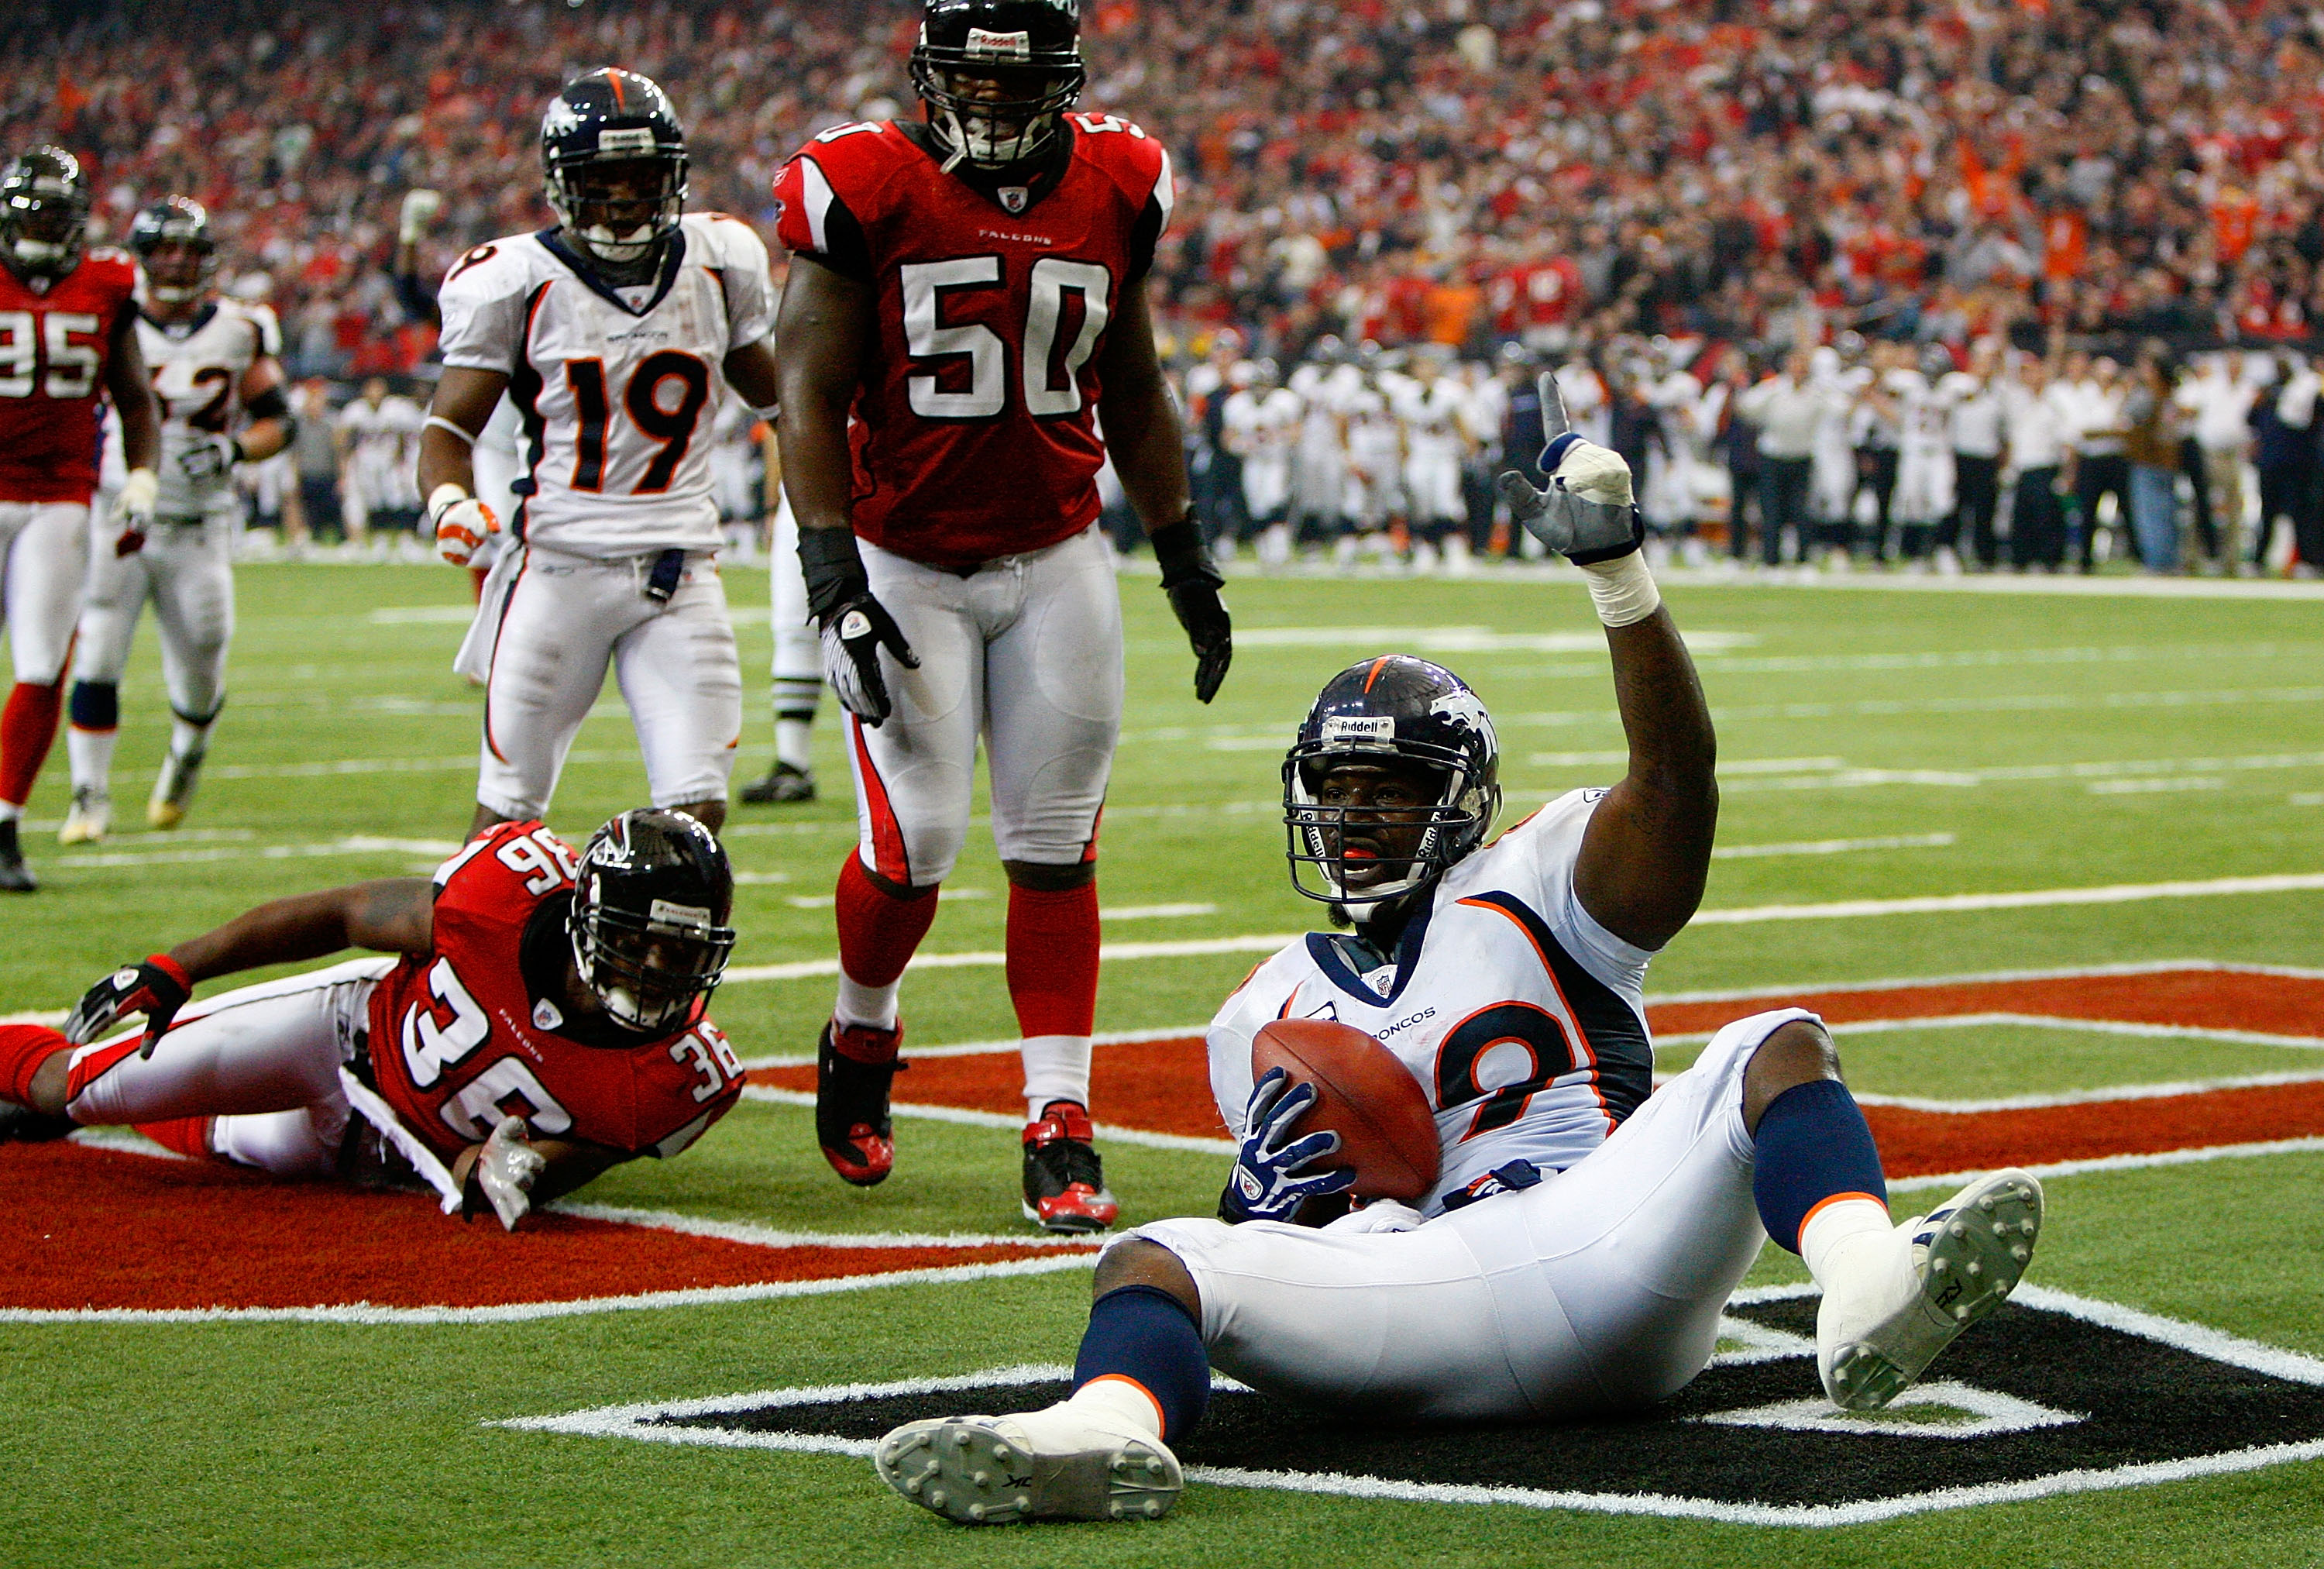 ATLANTA - NOVEMBER 16:  Tight end Daniel Graham #89 of the Denver Broncos reacts after scoring the game-winning touchdown against Lawyer Milloy #36 and Curtis Lofton #50 of the Atlanta Falcons during the game at the Georgia Dome on November 16, 2008 in At